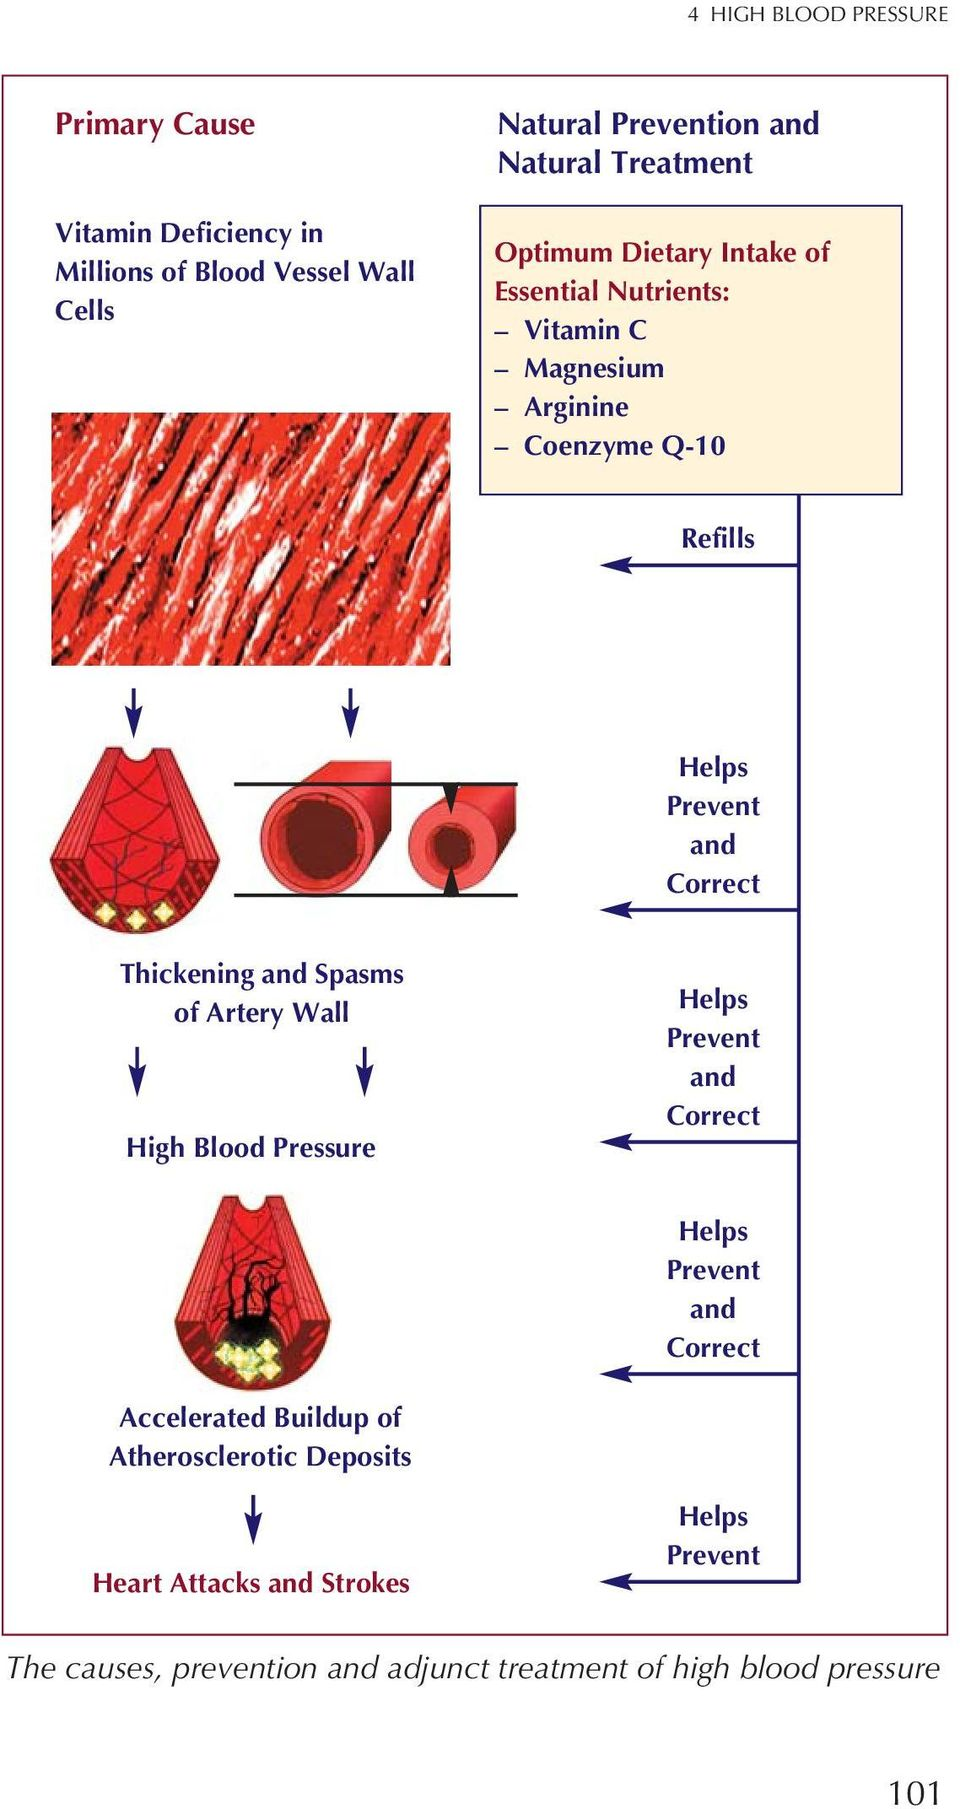 Correct Thickening and Spasms of Artery Wall High Blood Pressure Helps Prevent and Correct Helps Prevent and Correct Accelerated